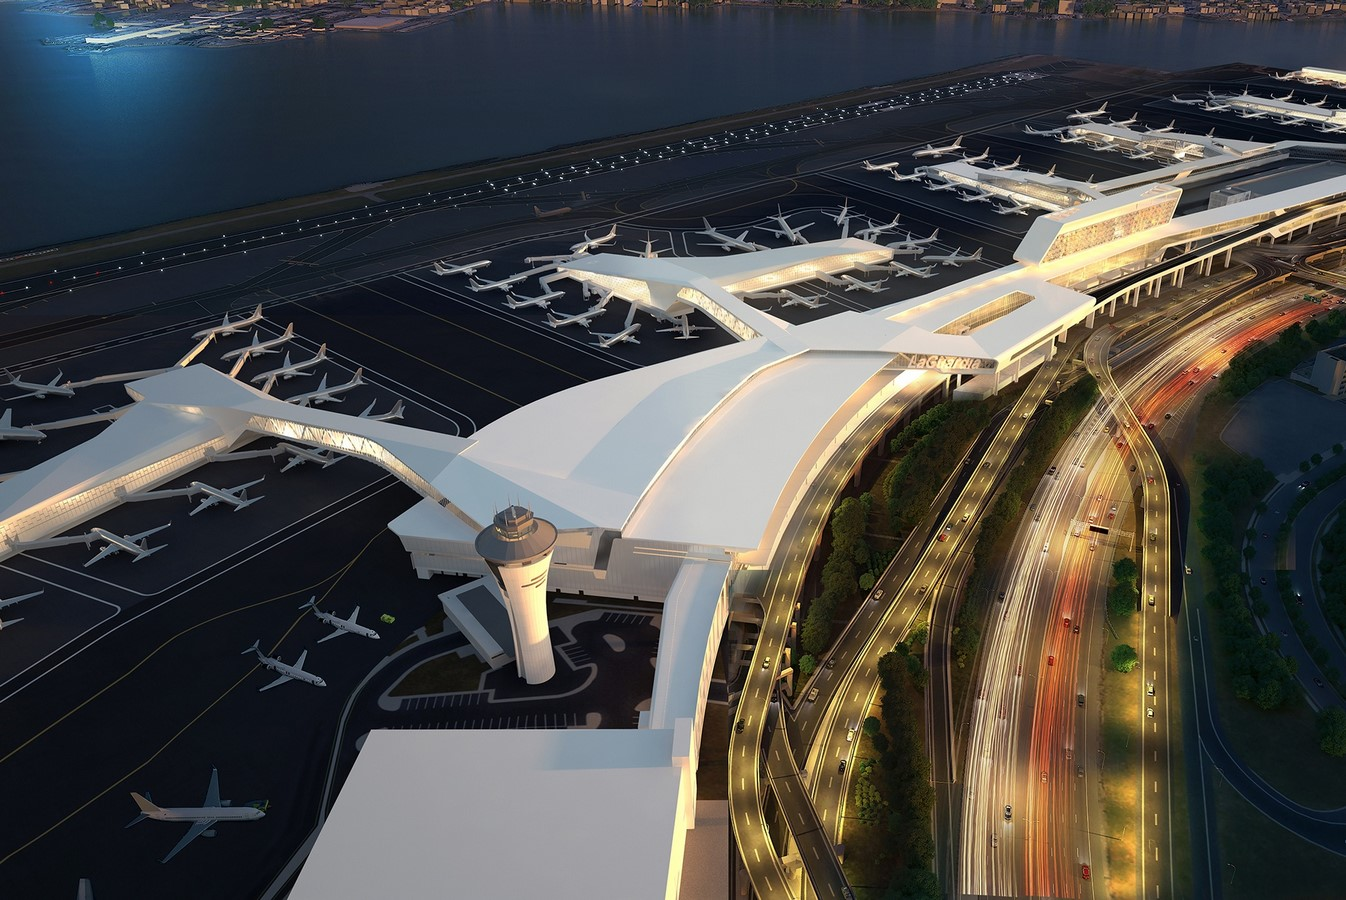 LaGuardia Airport by HOK: Advanced for it's time yet criticized - Sheet4